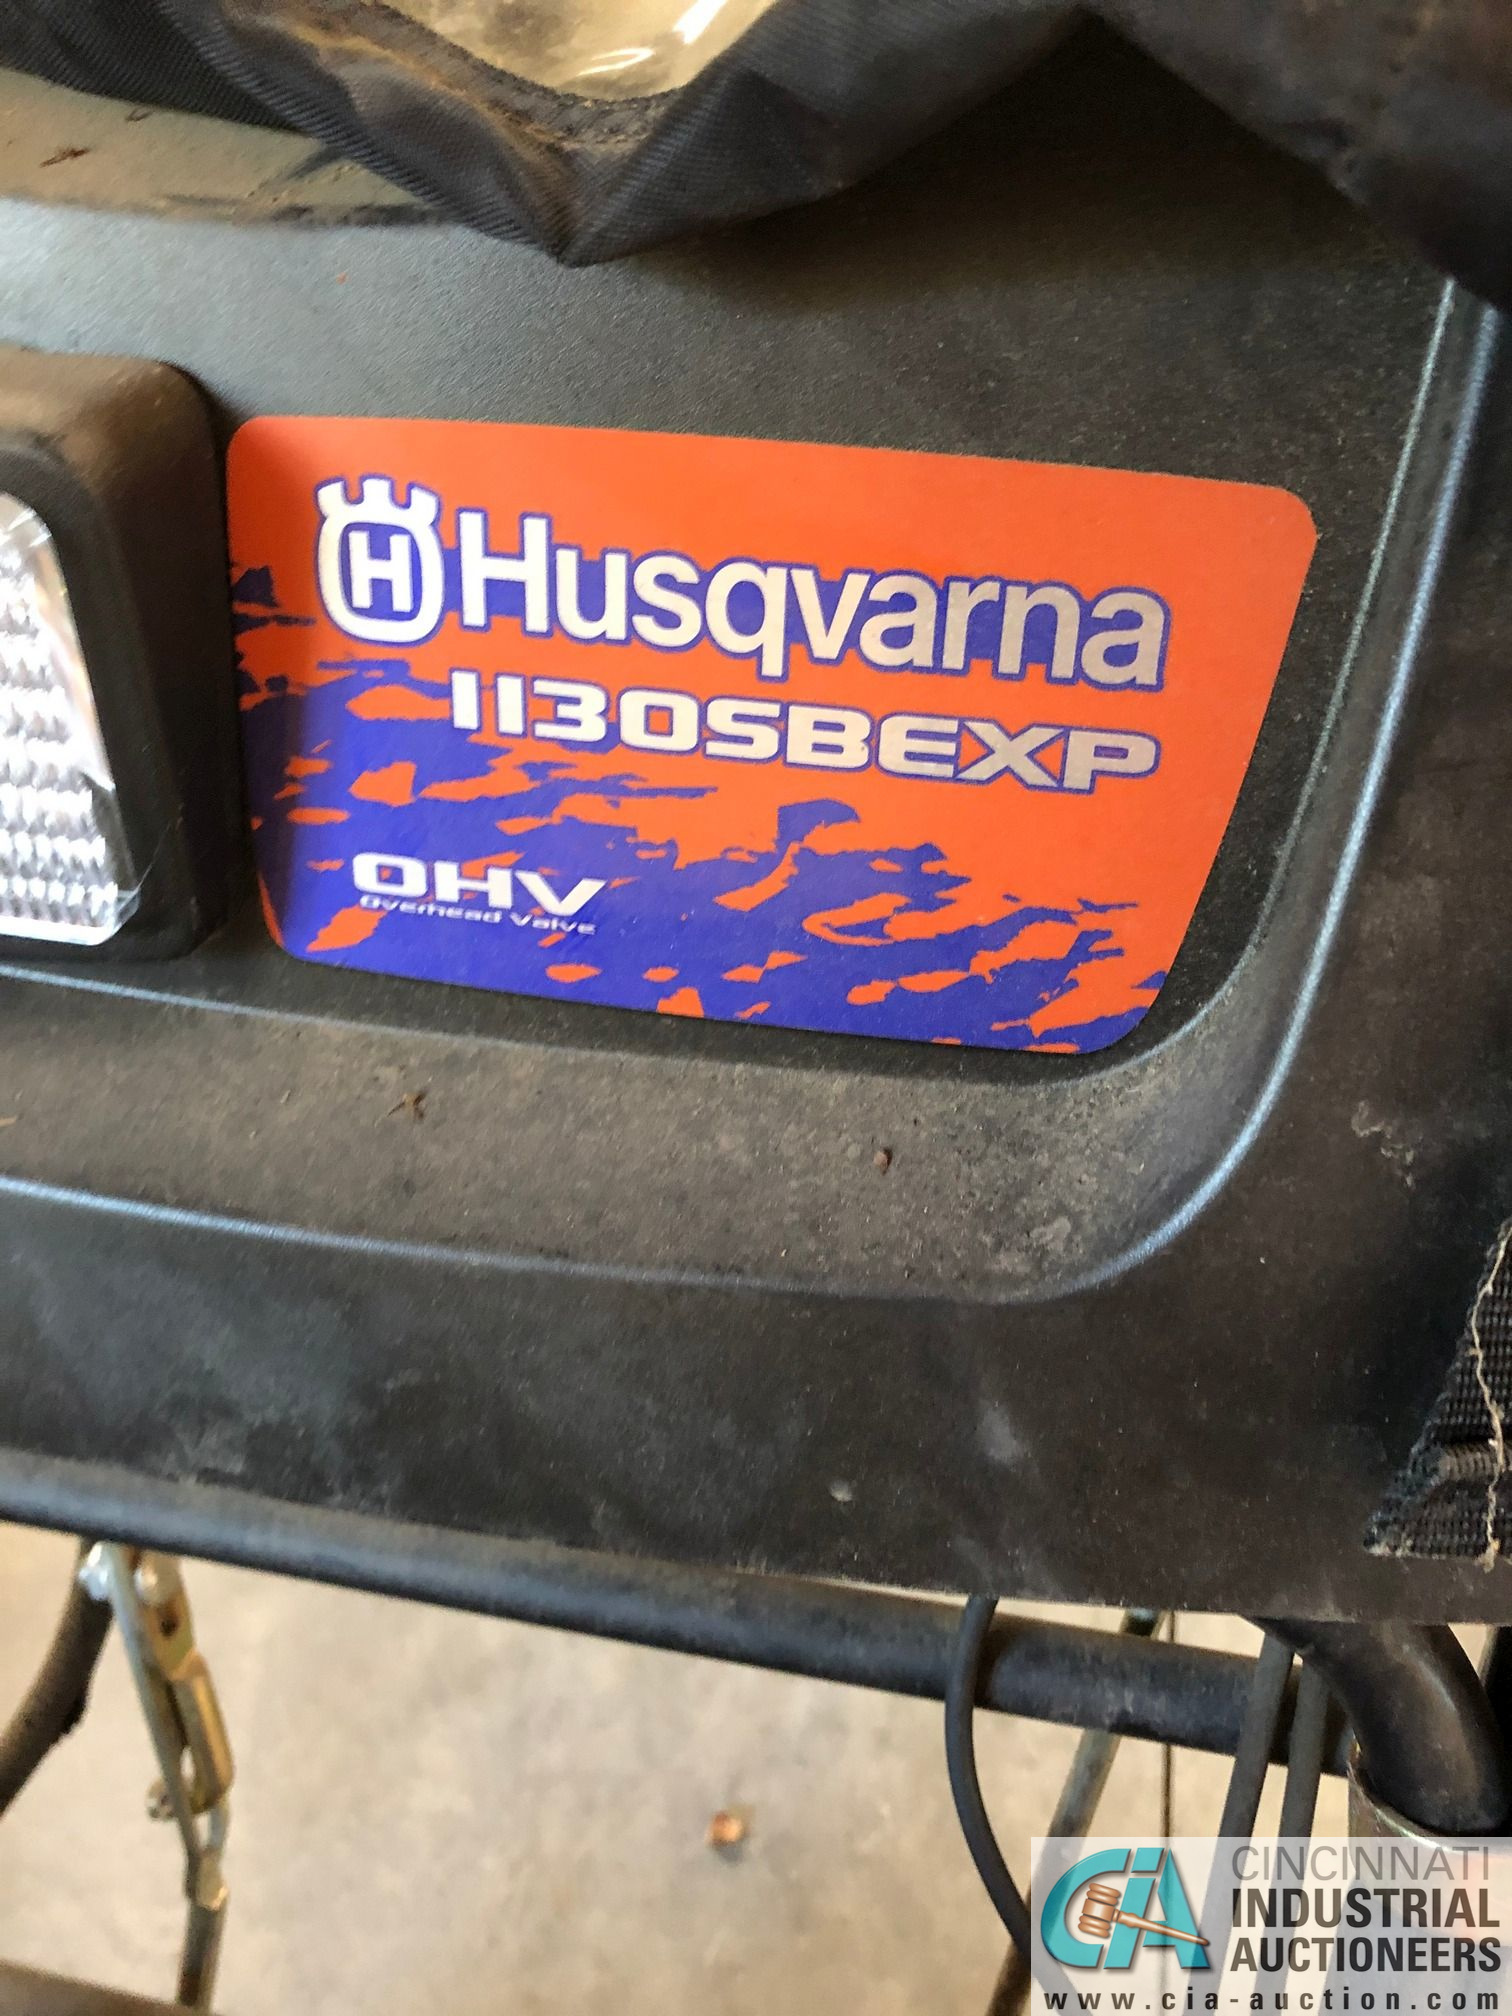 HUSQVARNA MODEL 1130SBE XP SNOW BLOWER; ELECTRIC START (5848 Vrooman Rd., Painsville, OH 44077 - Ron - Image 2 of 4